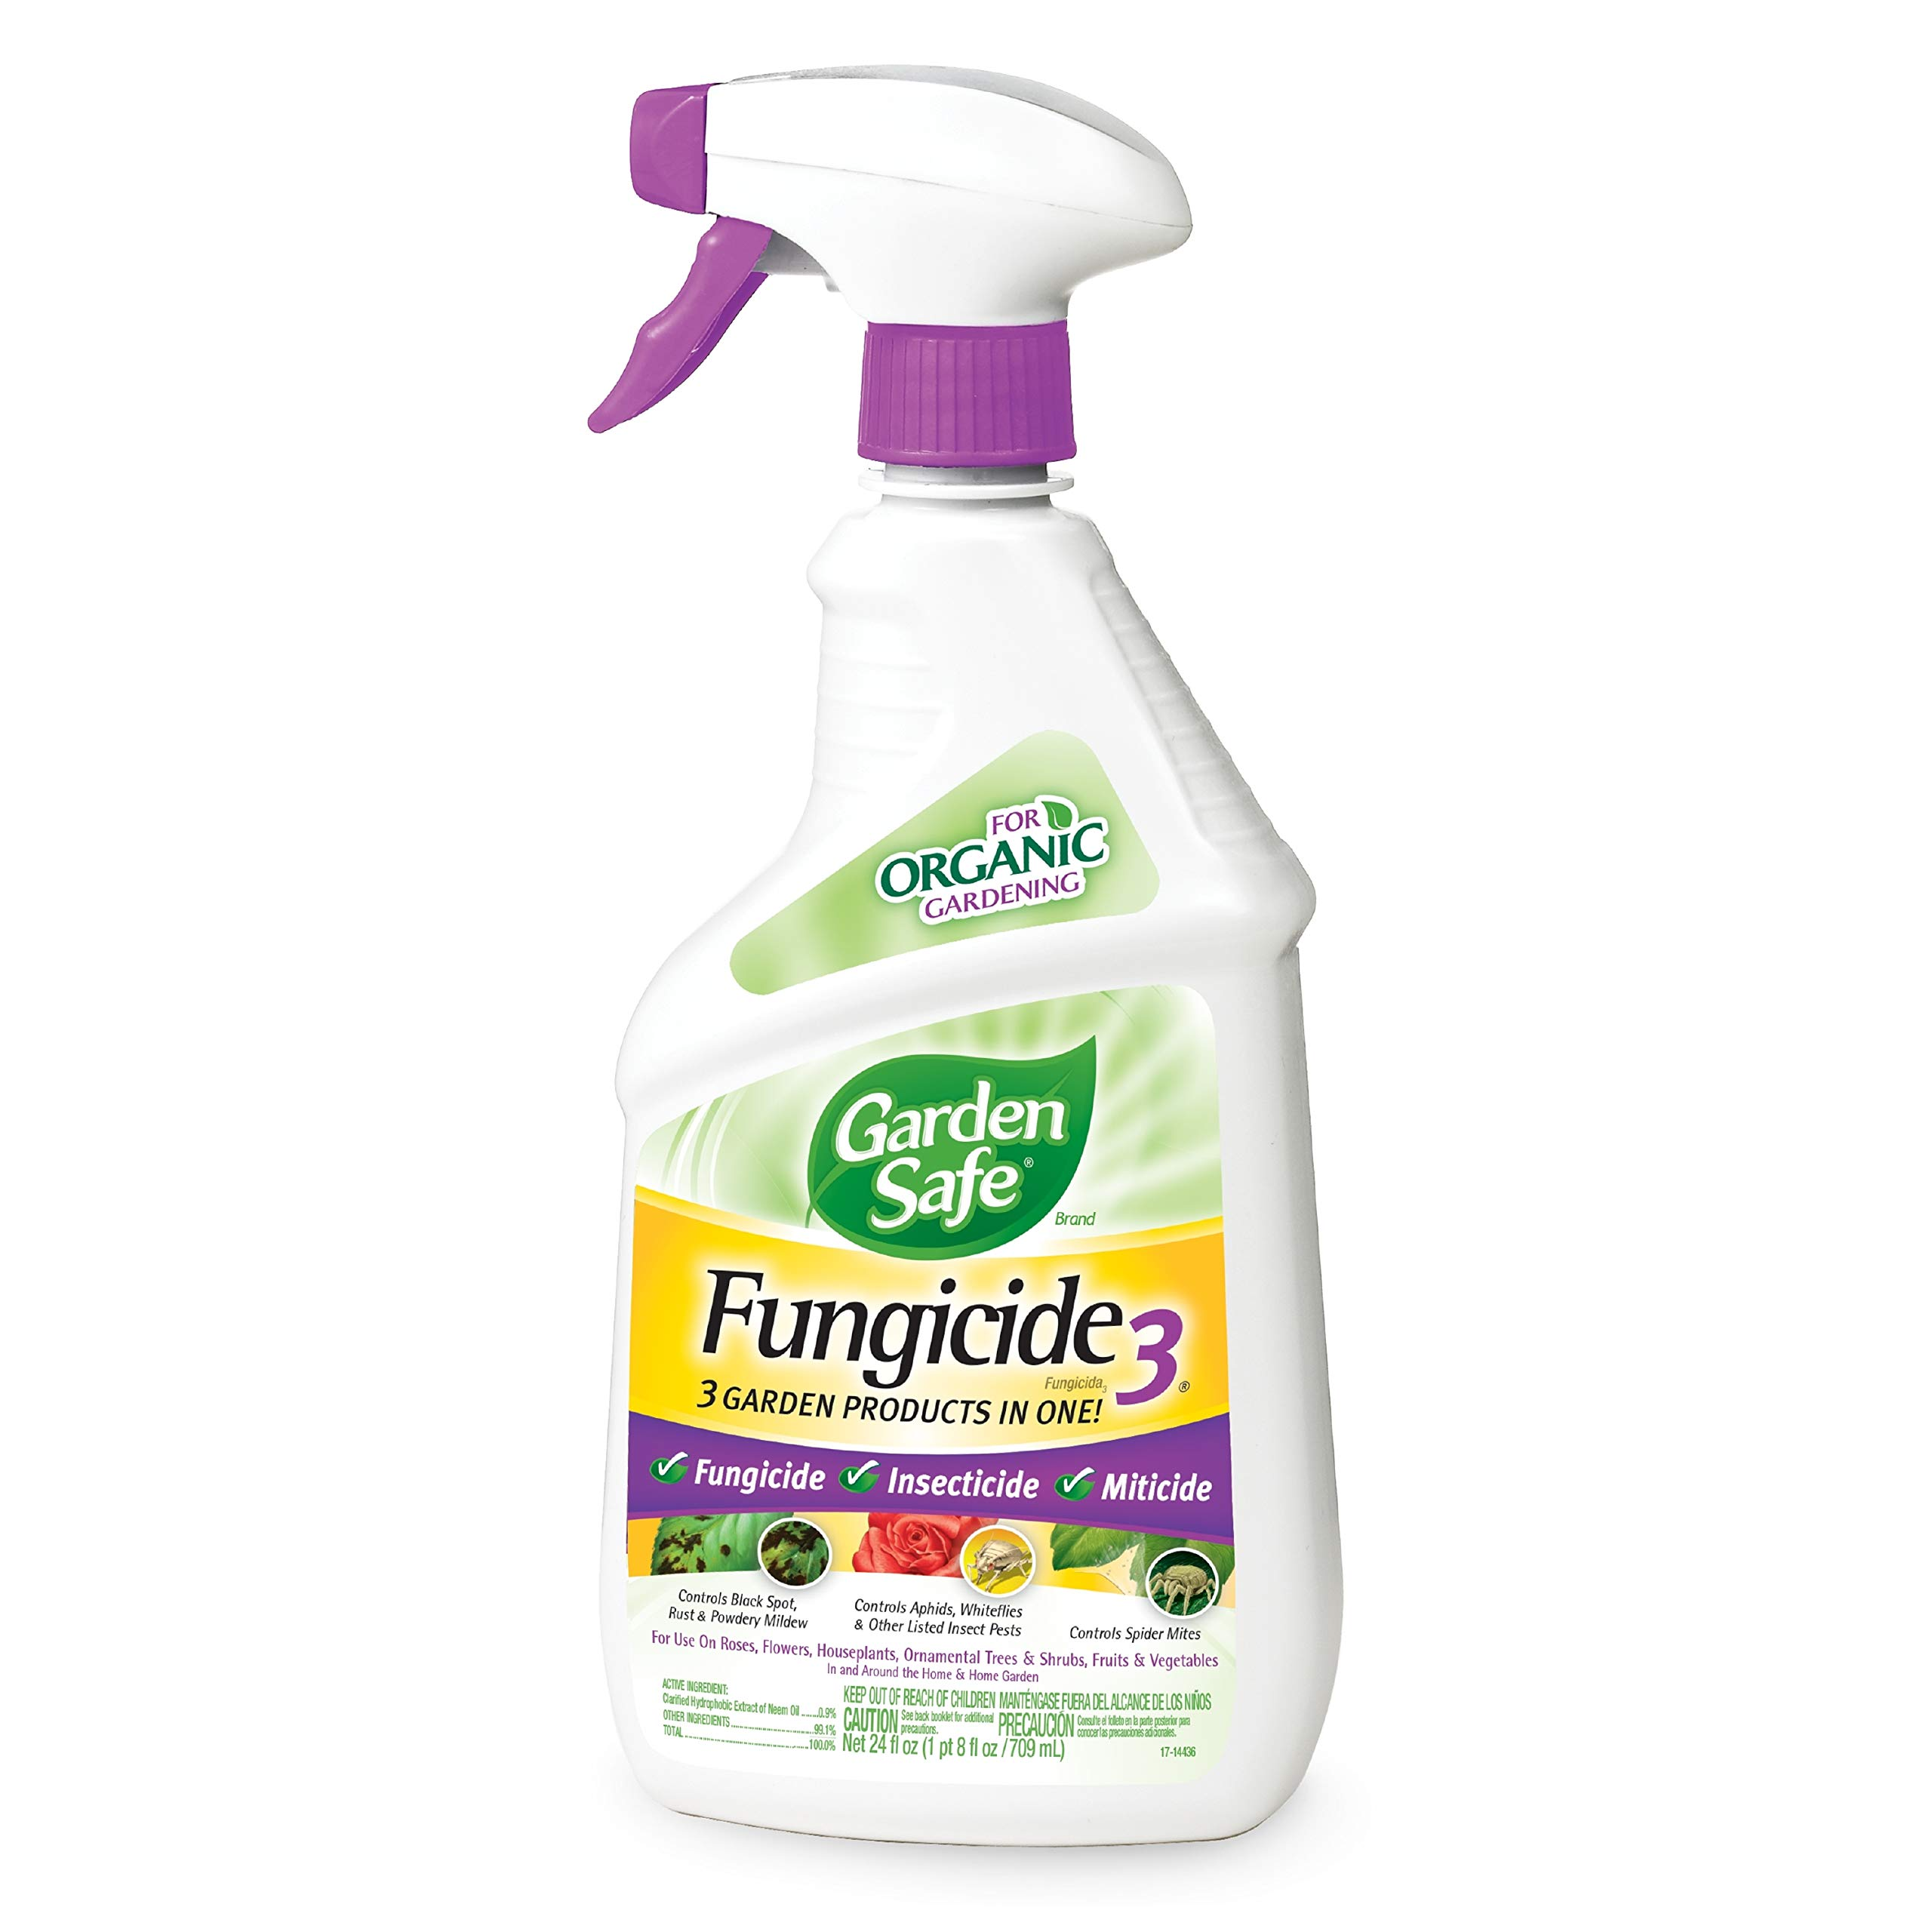 Garden Safe Brand Fungicide3, Ready-to-Use, 24-Ounce, 6-Pack by Garden Safe